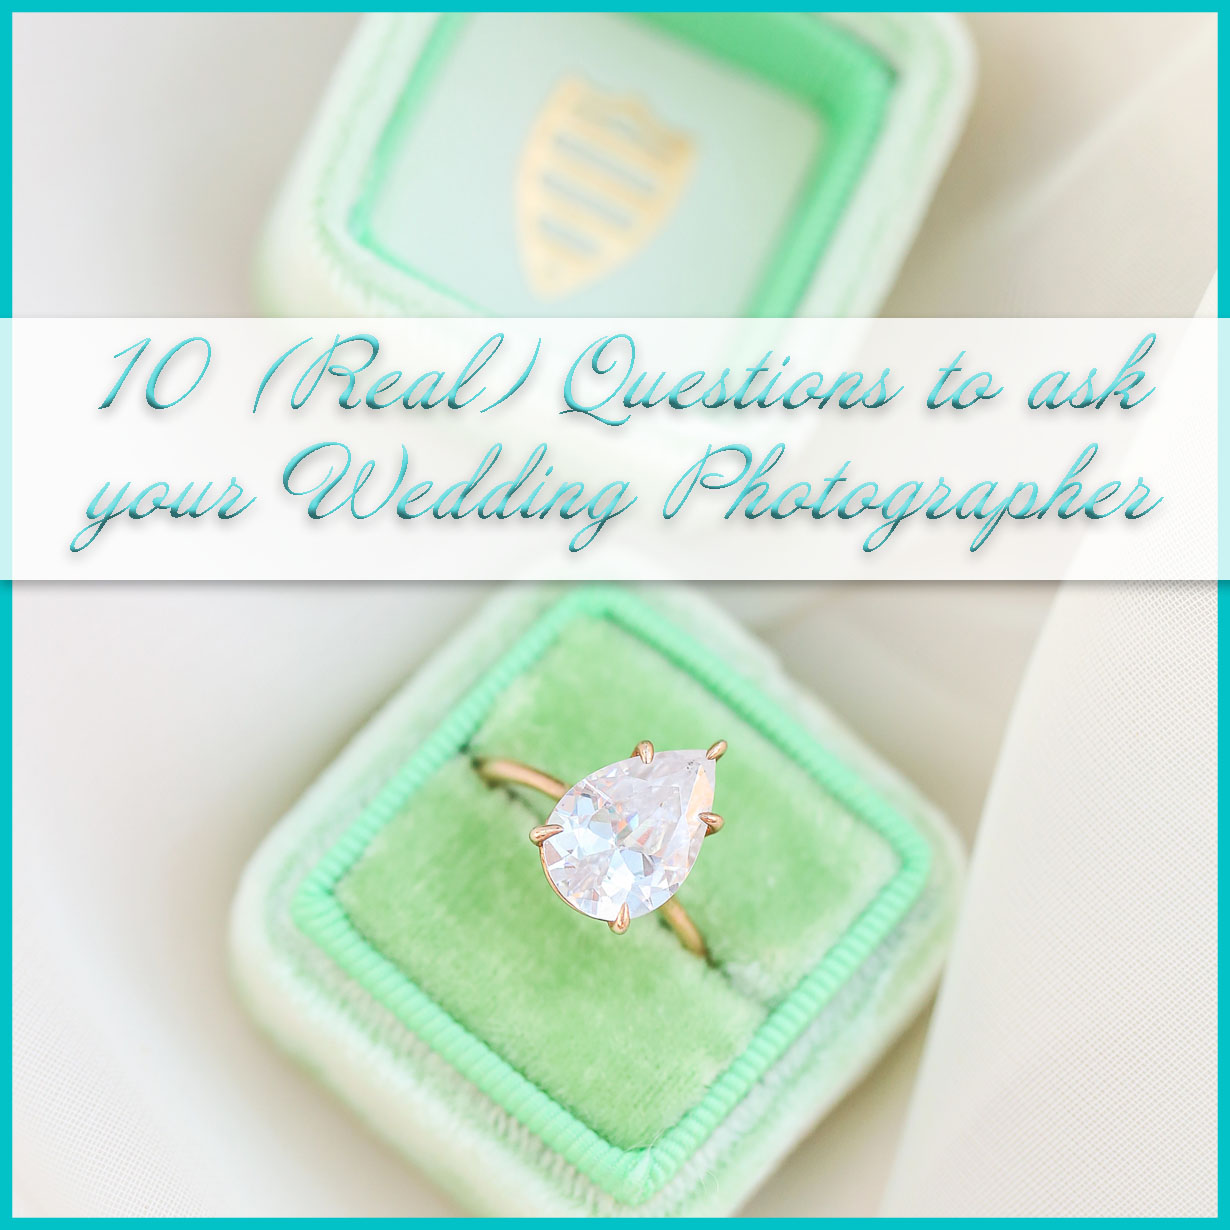 Questions To Ask Your Wedding Photographer.10 Real Questions To Ask Your Wedding Photographer